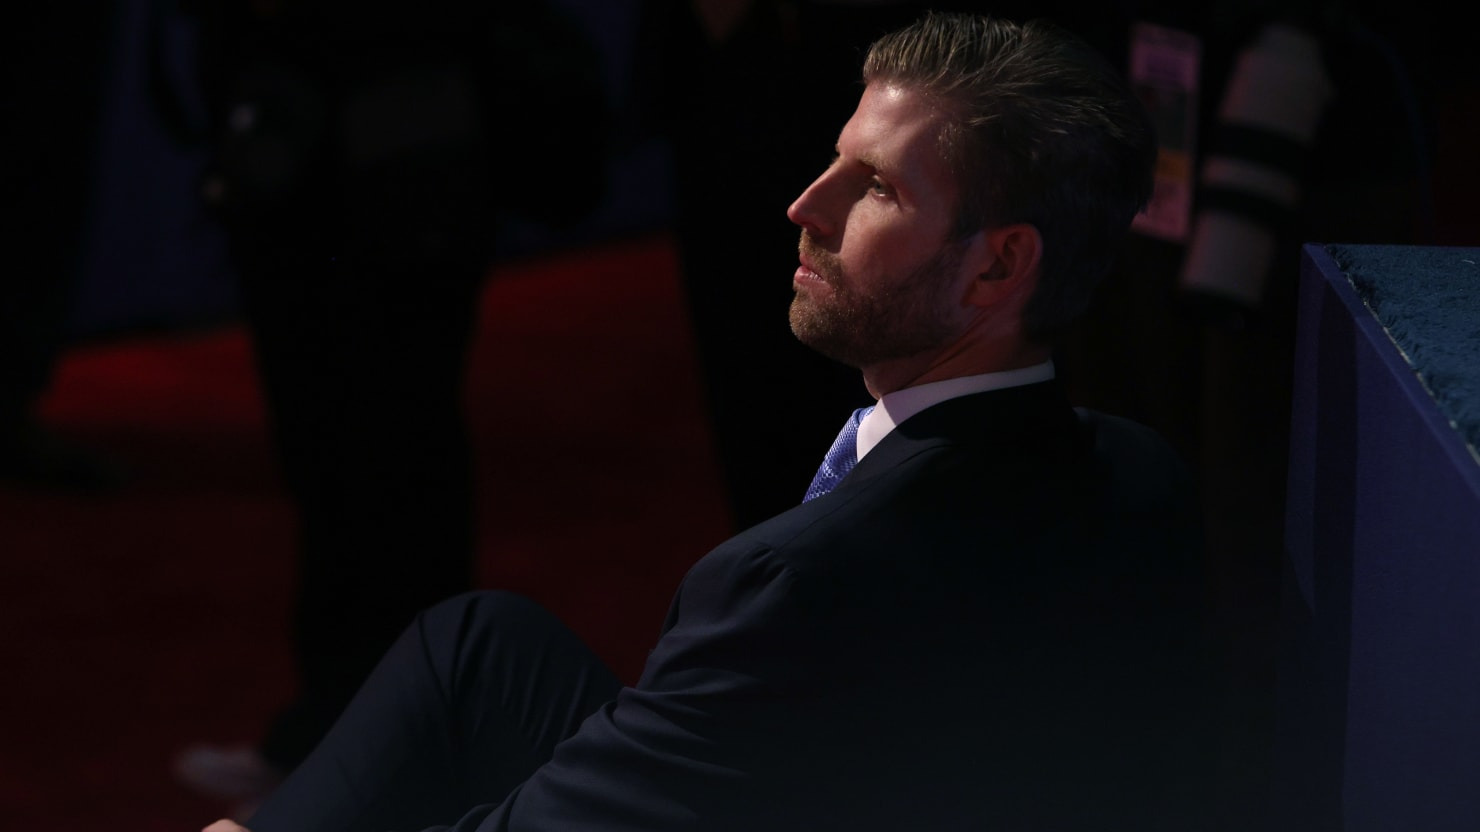 Eric Trump Asks for Prayers for His Father Over COVID-19 Battle